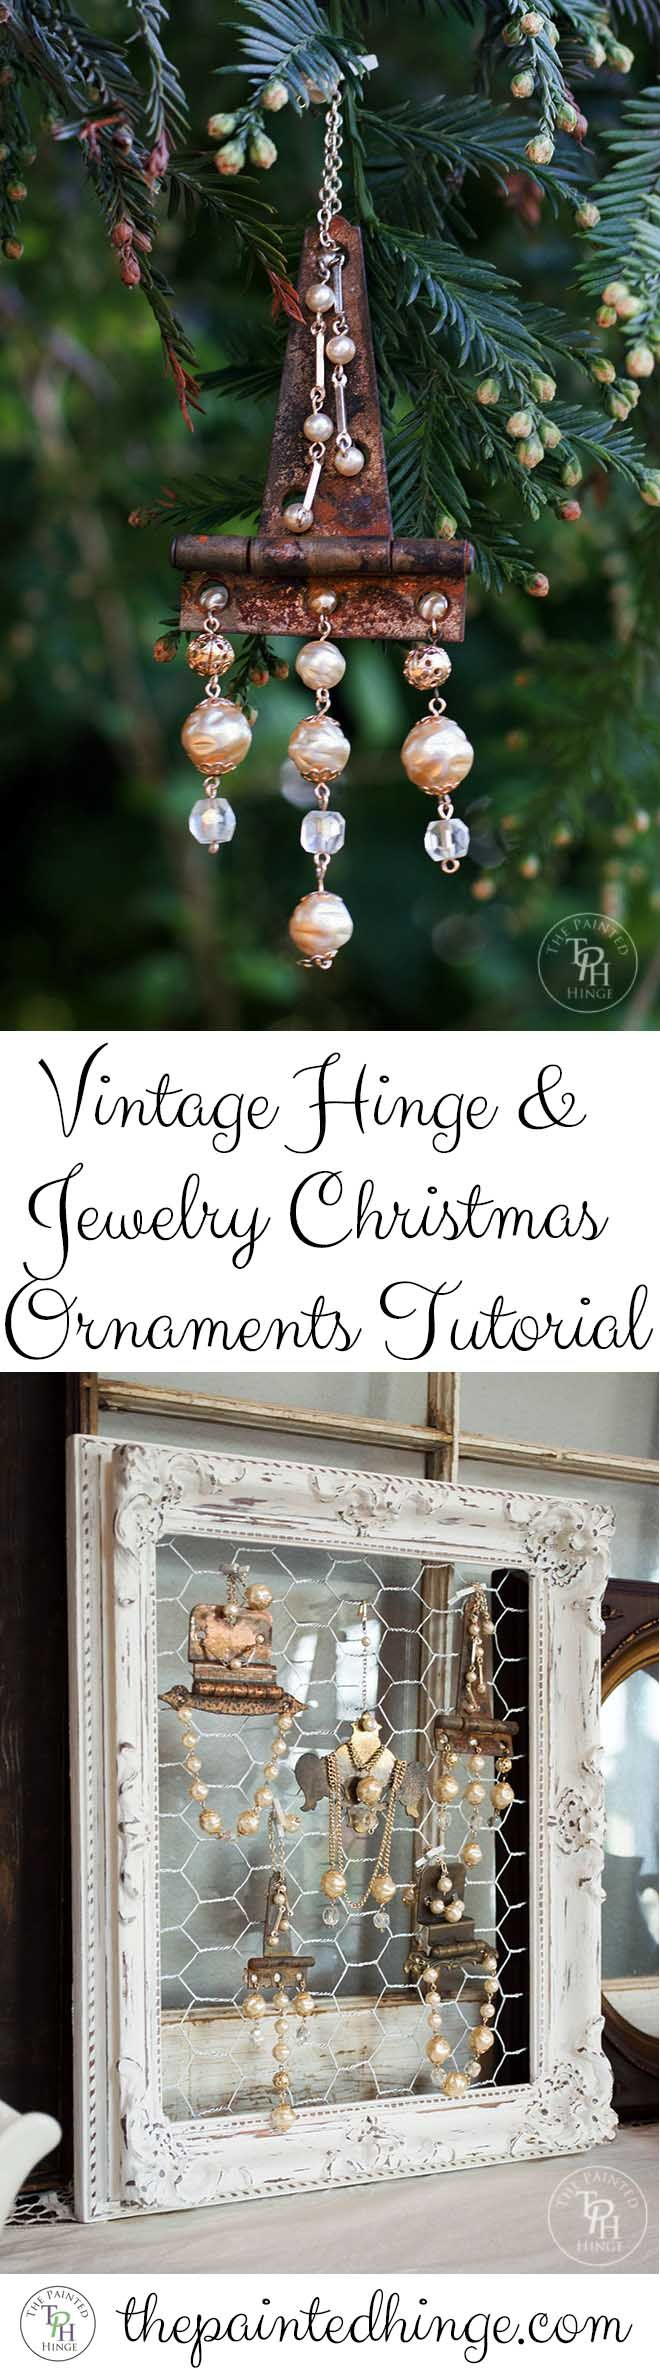 Primitive christmas ideas to make - Vintage Hinge Jewelry Christmas Ornaments